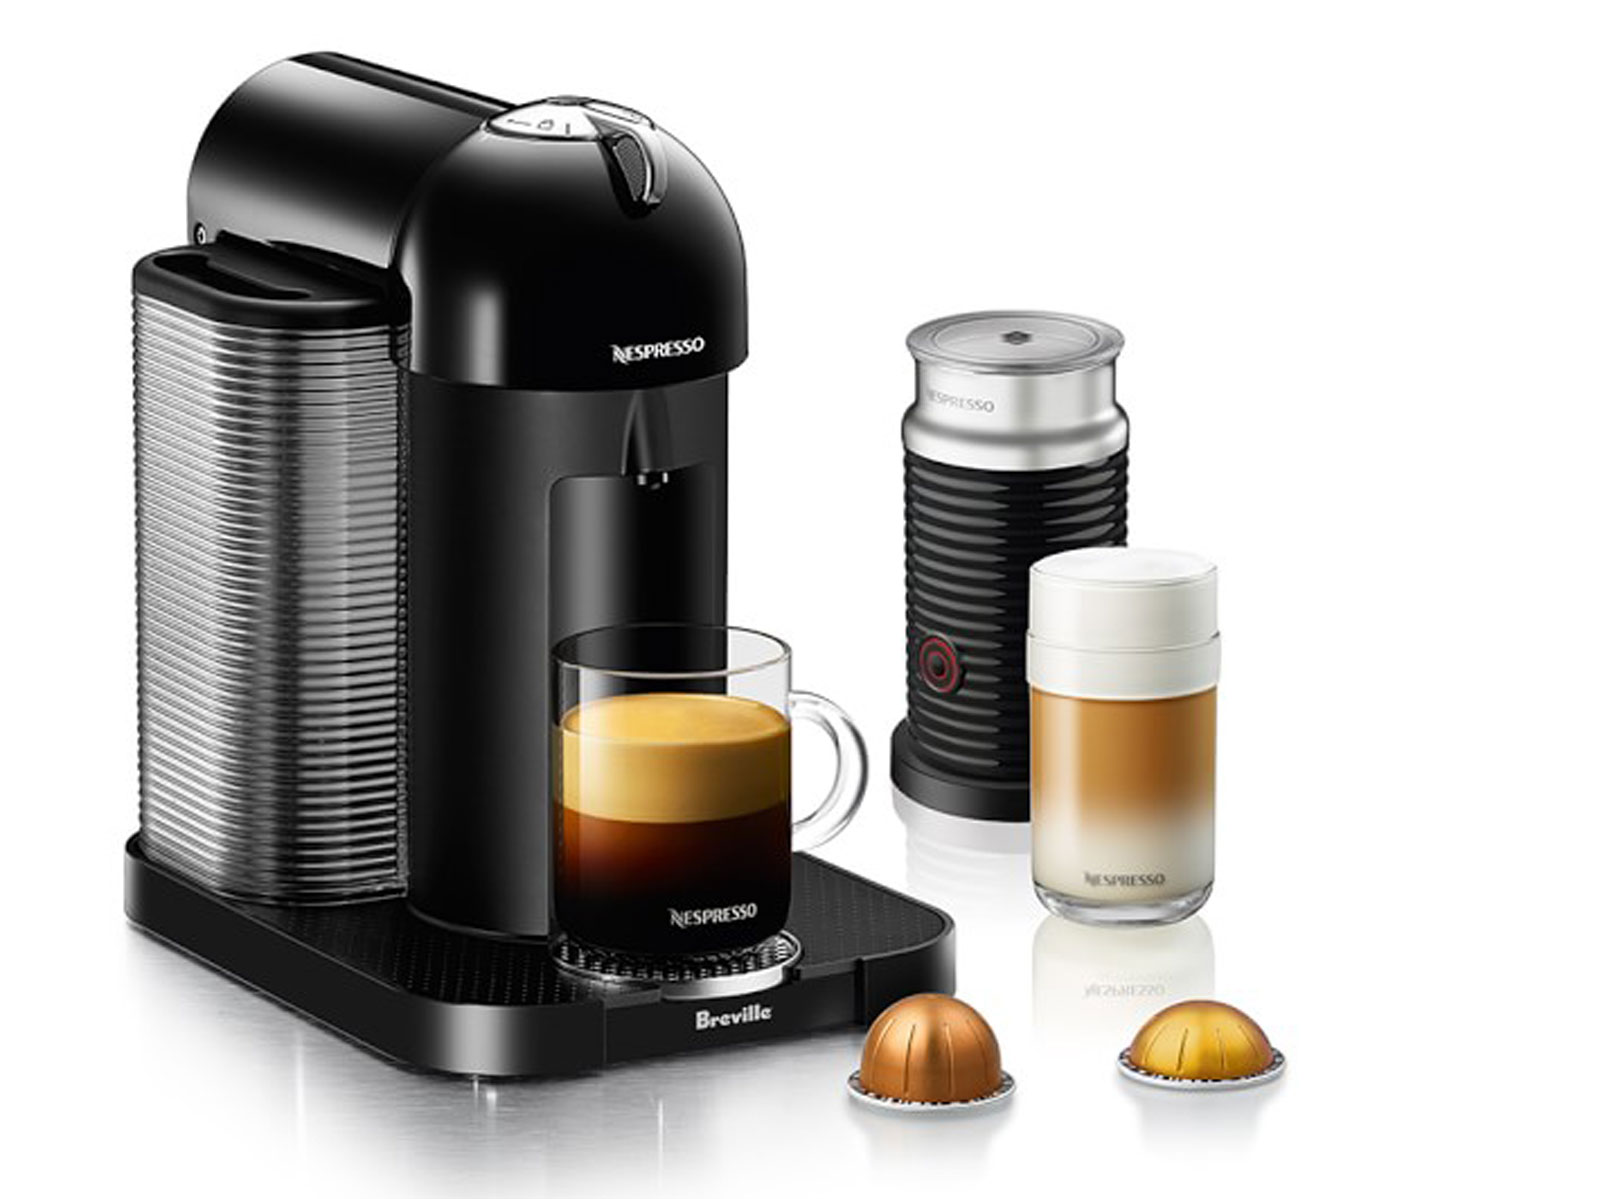 Nespresso Vertuo Coffee Maker & Espresso Machine by Breville with Aeroccino